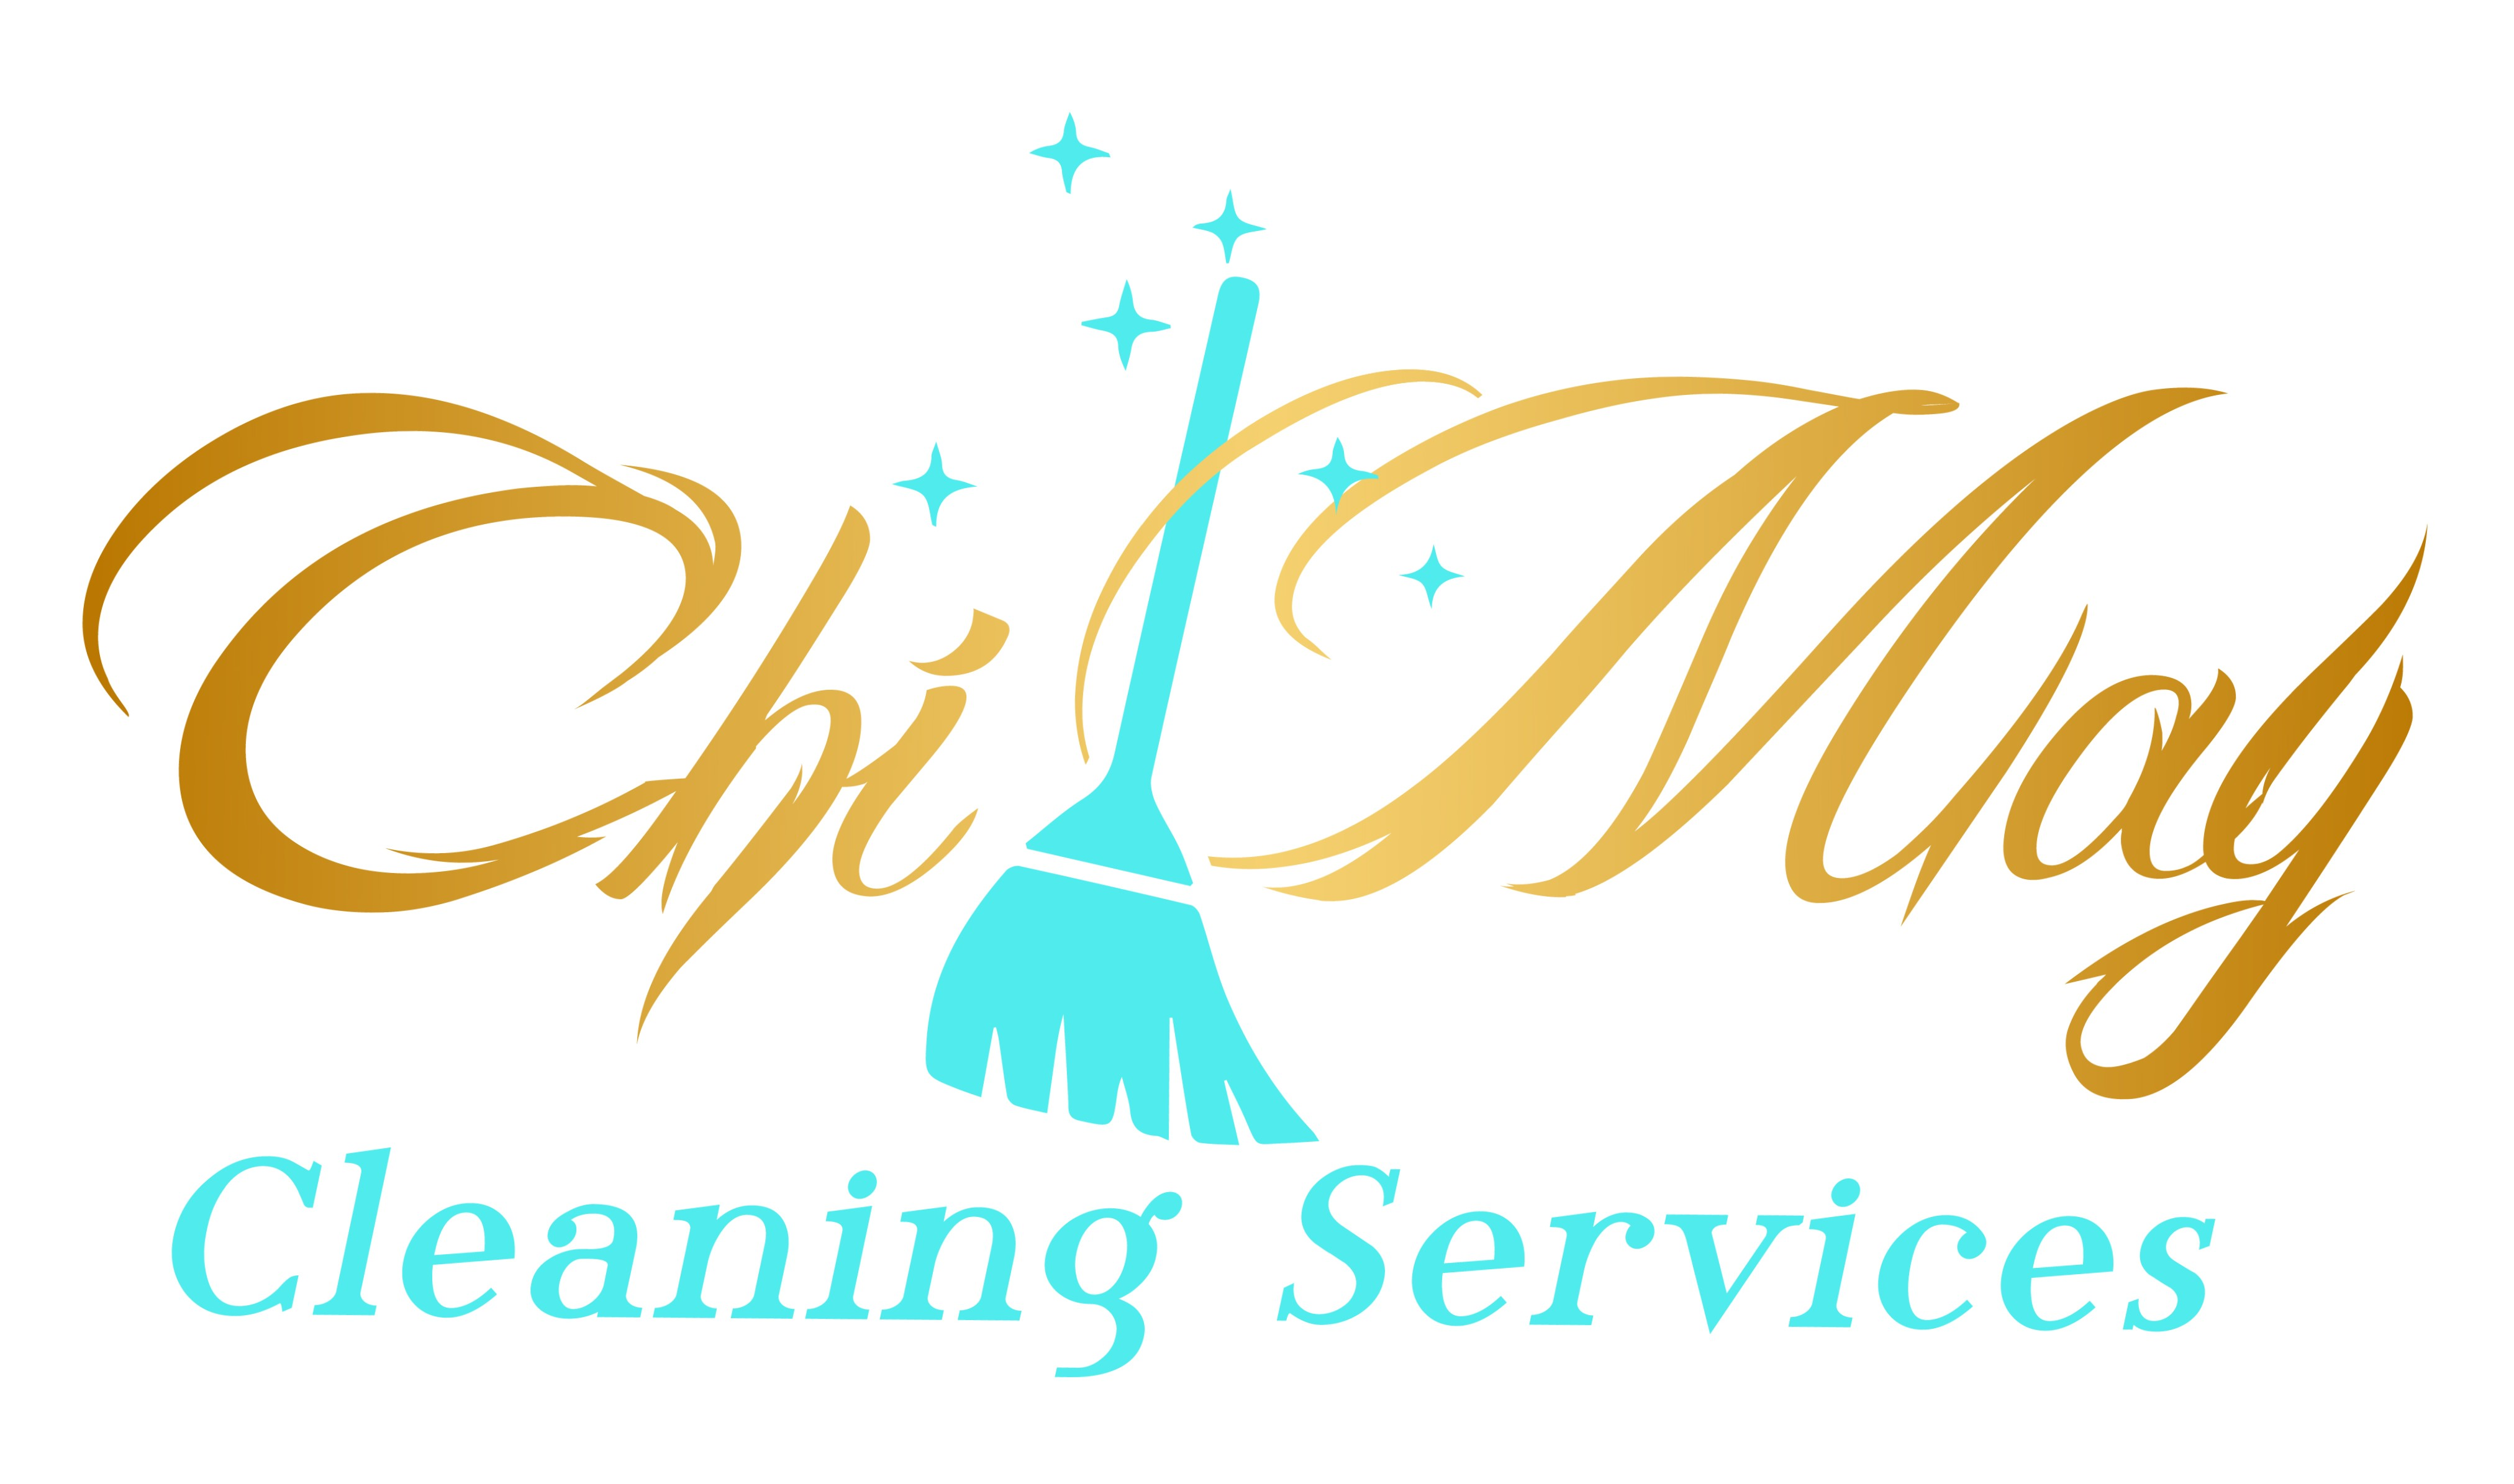 Chi May Cleaning Services